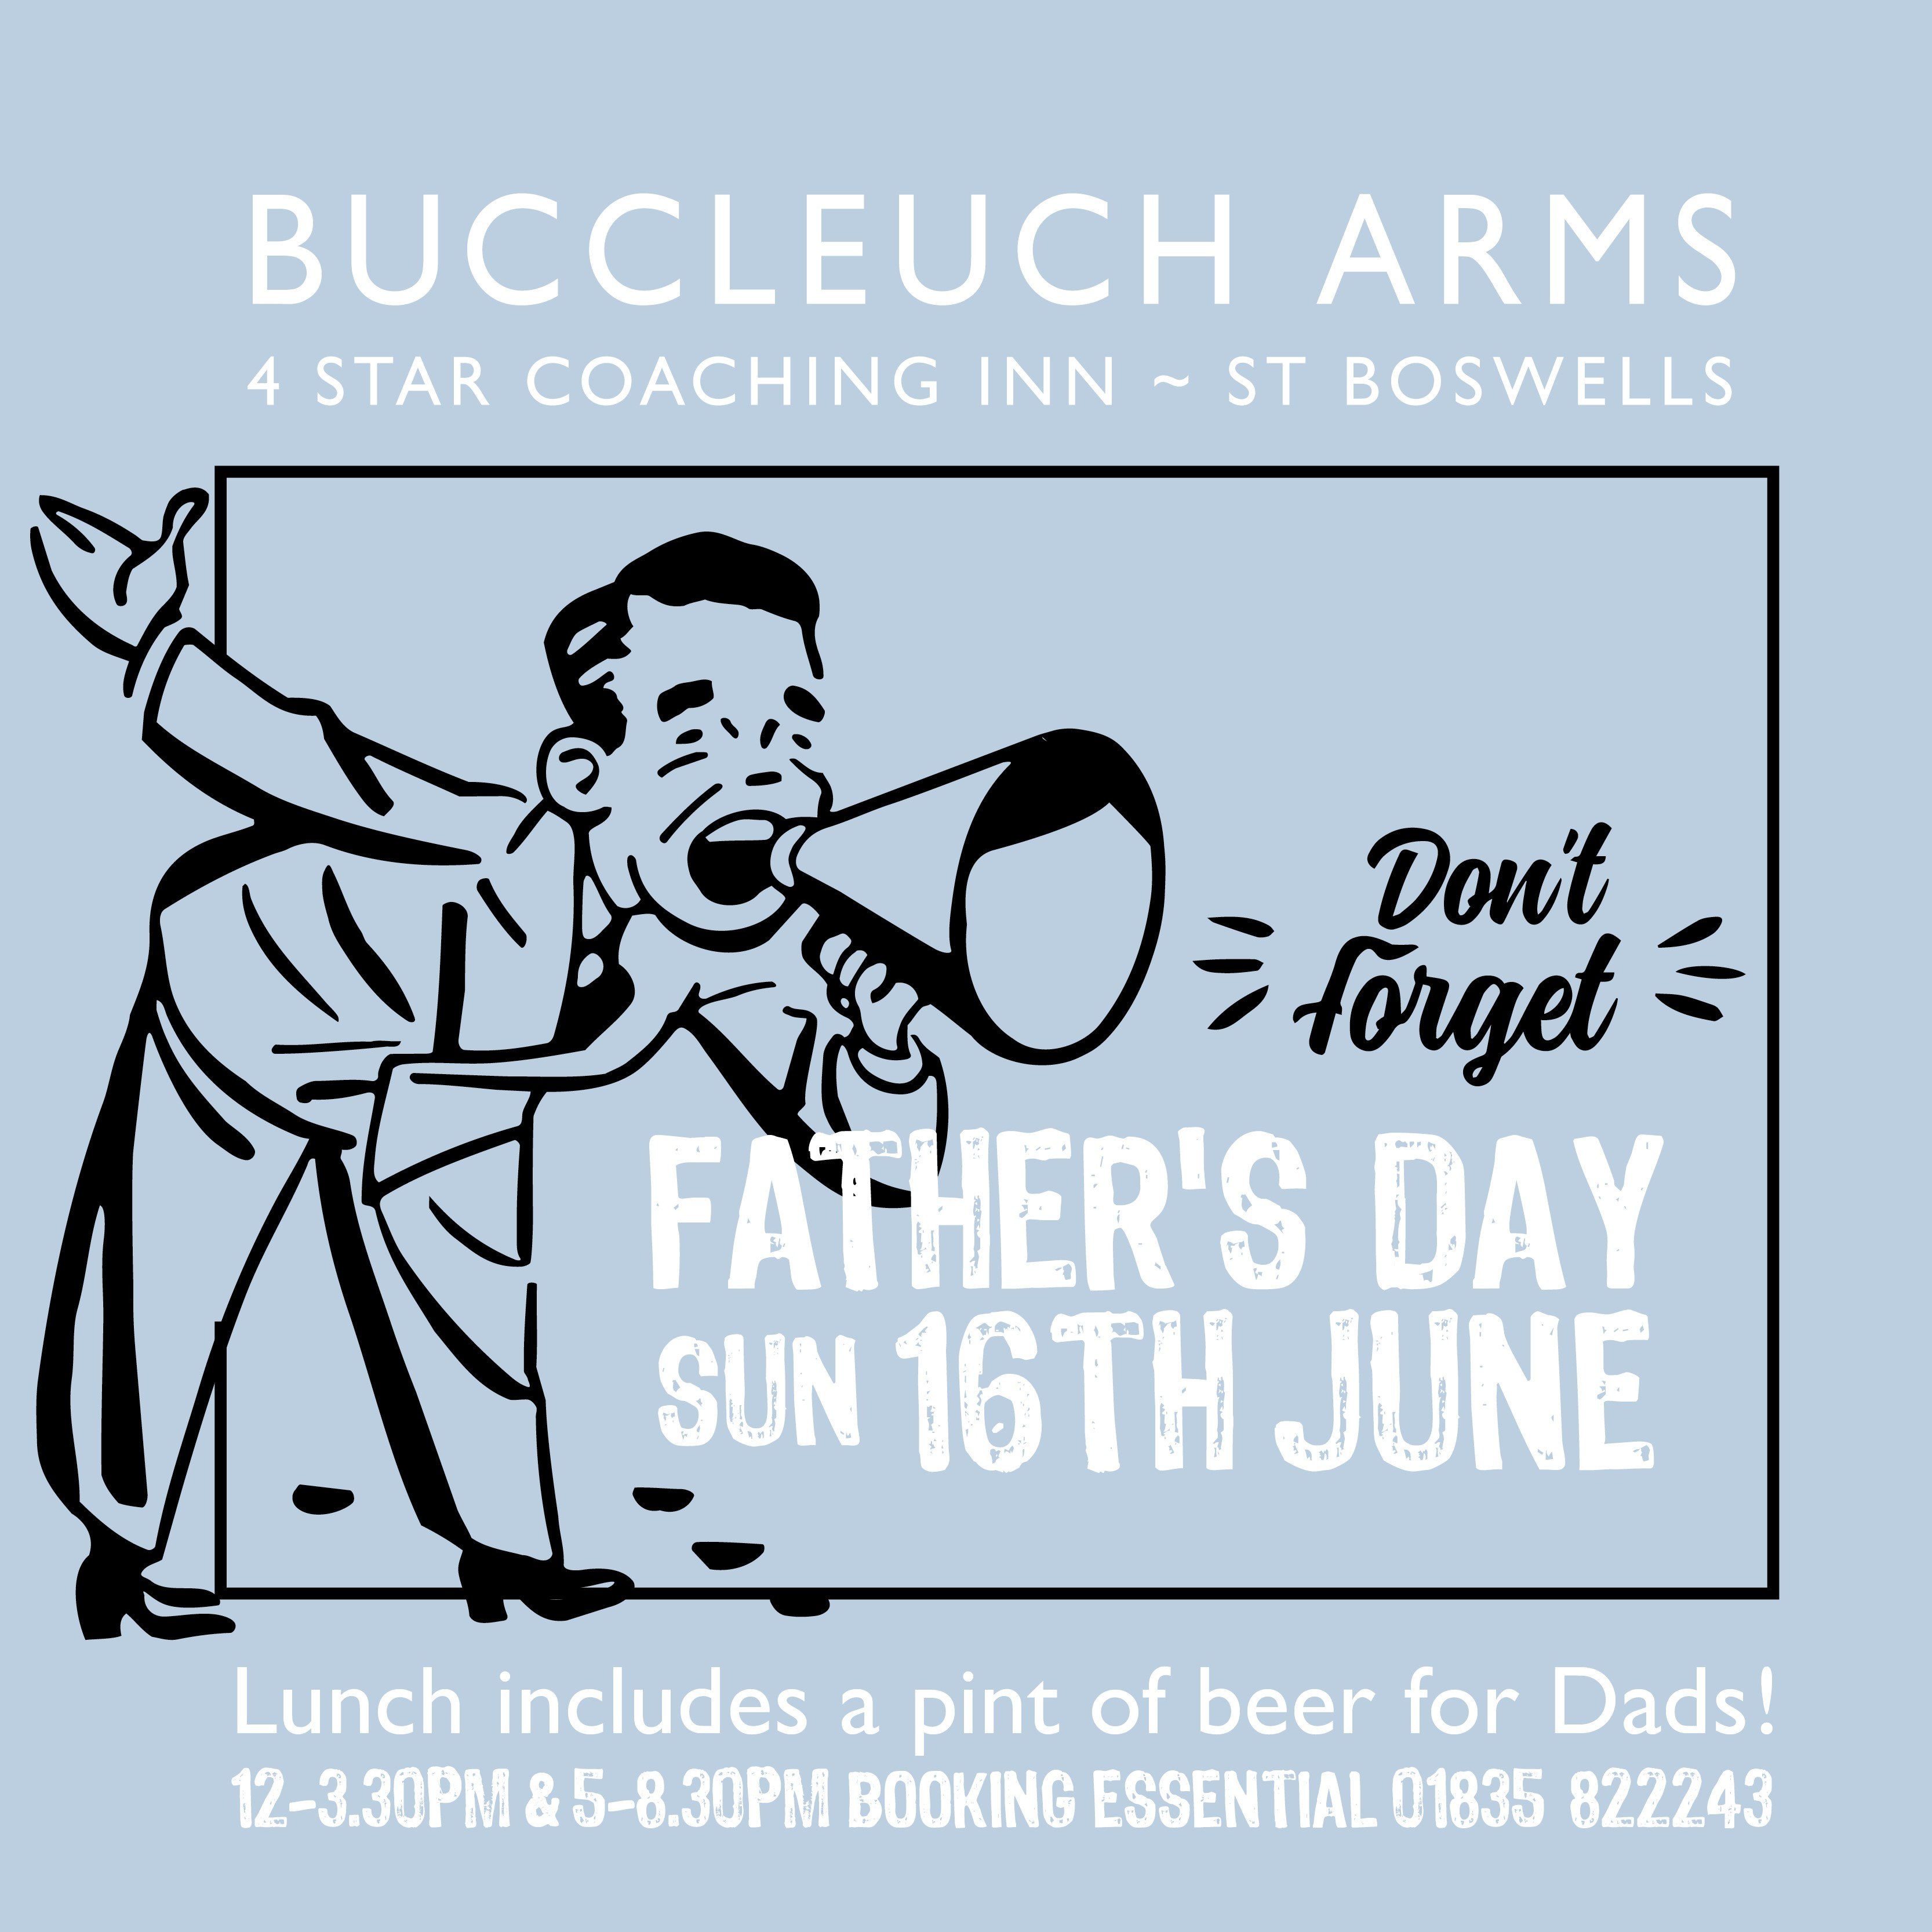 Father's Day Sunday 16th June